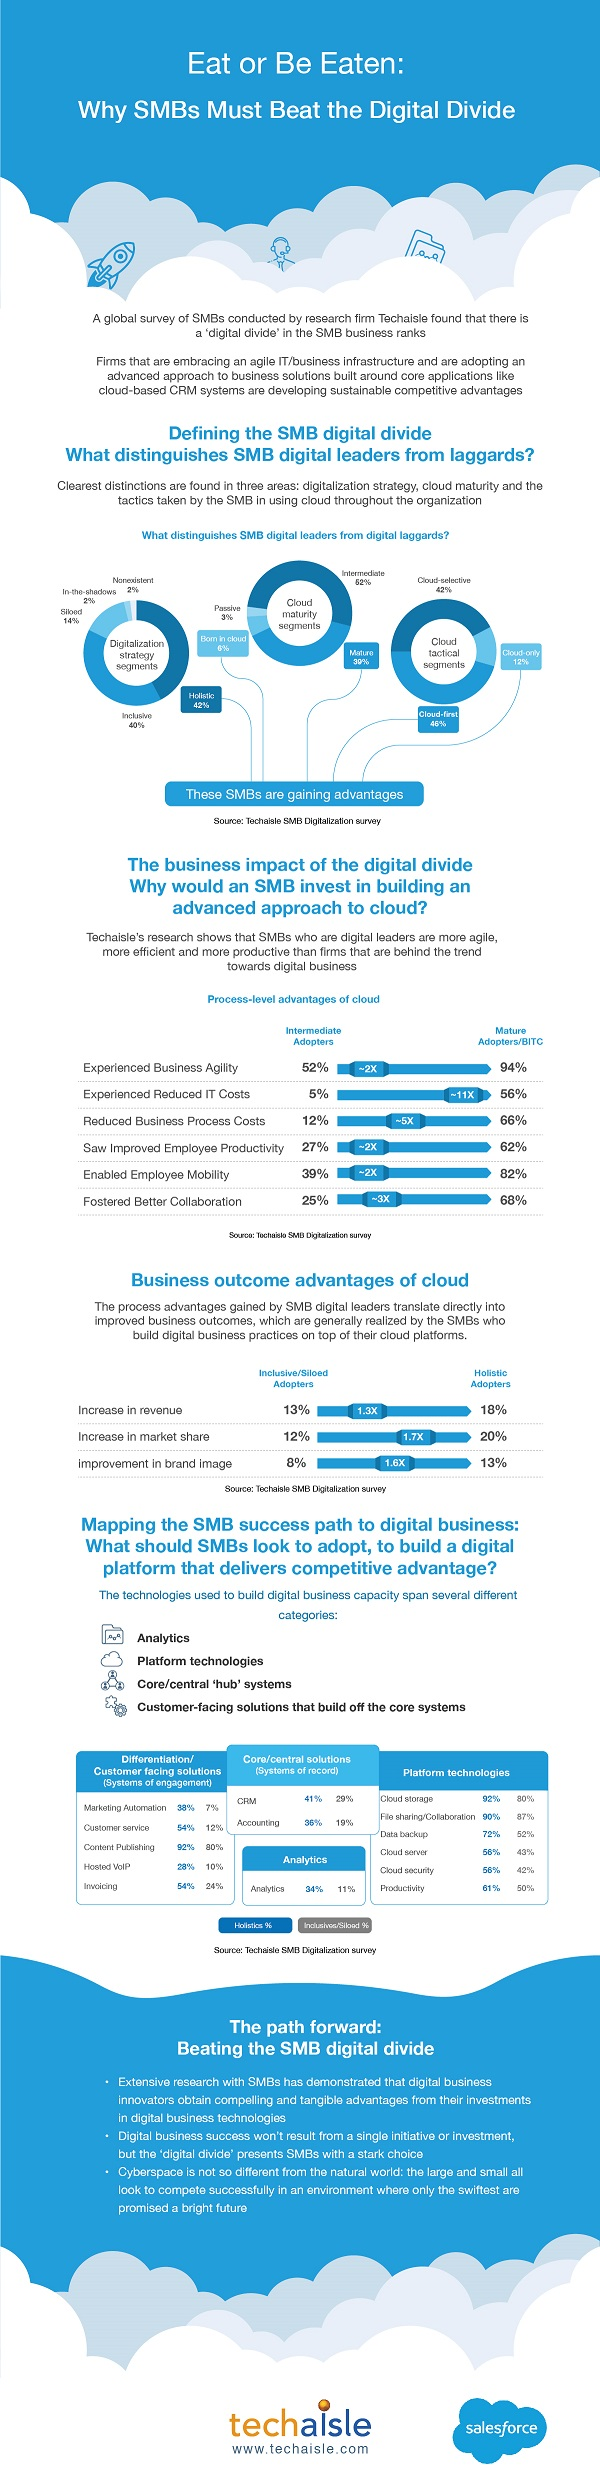 techaisle infographic smb digital divide salesforce low res